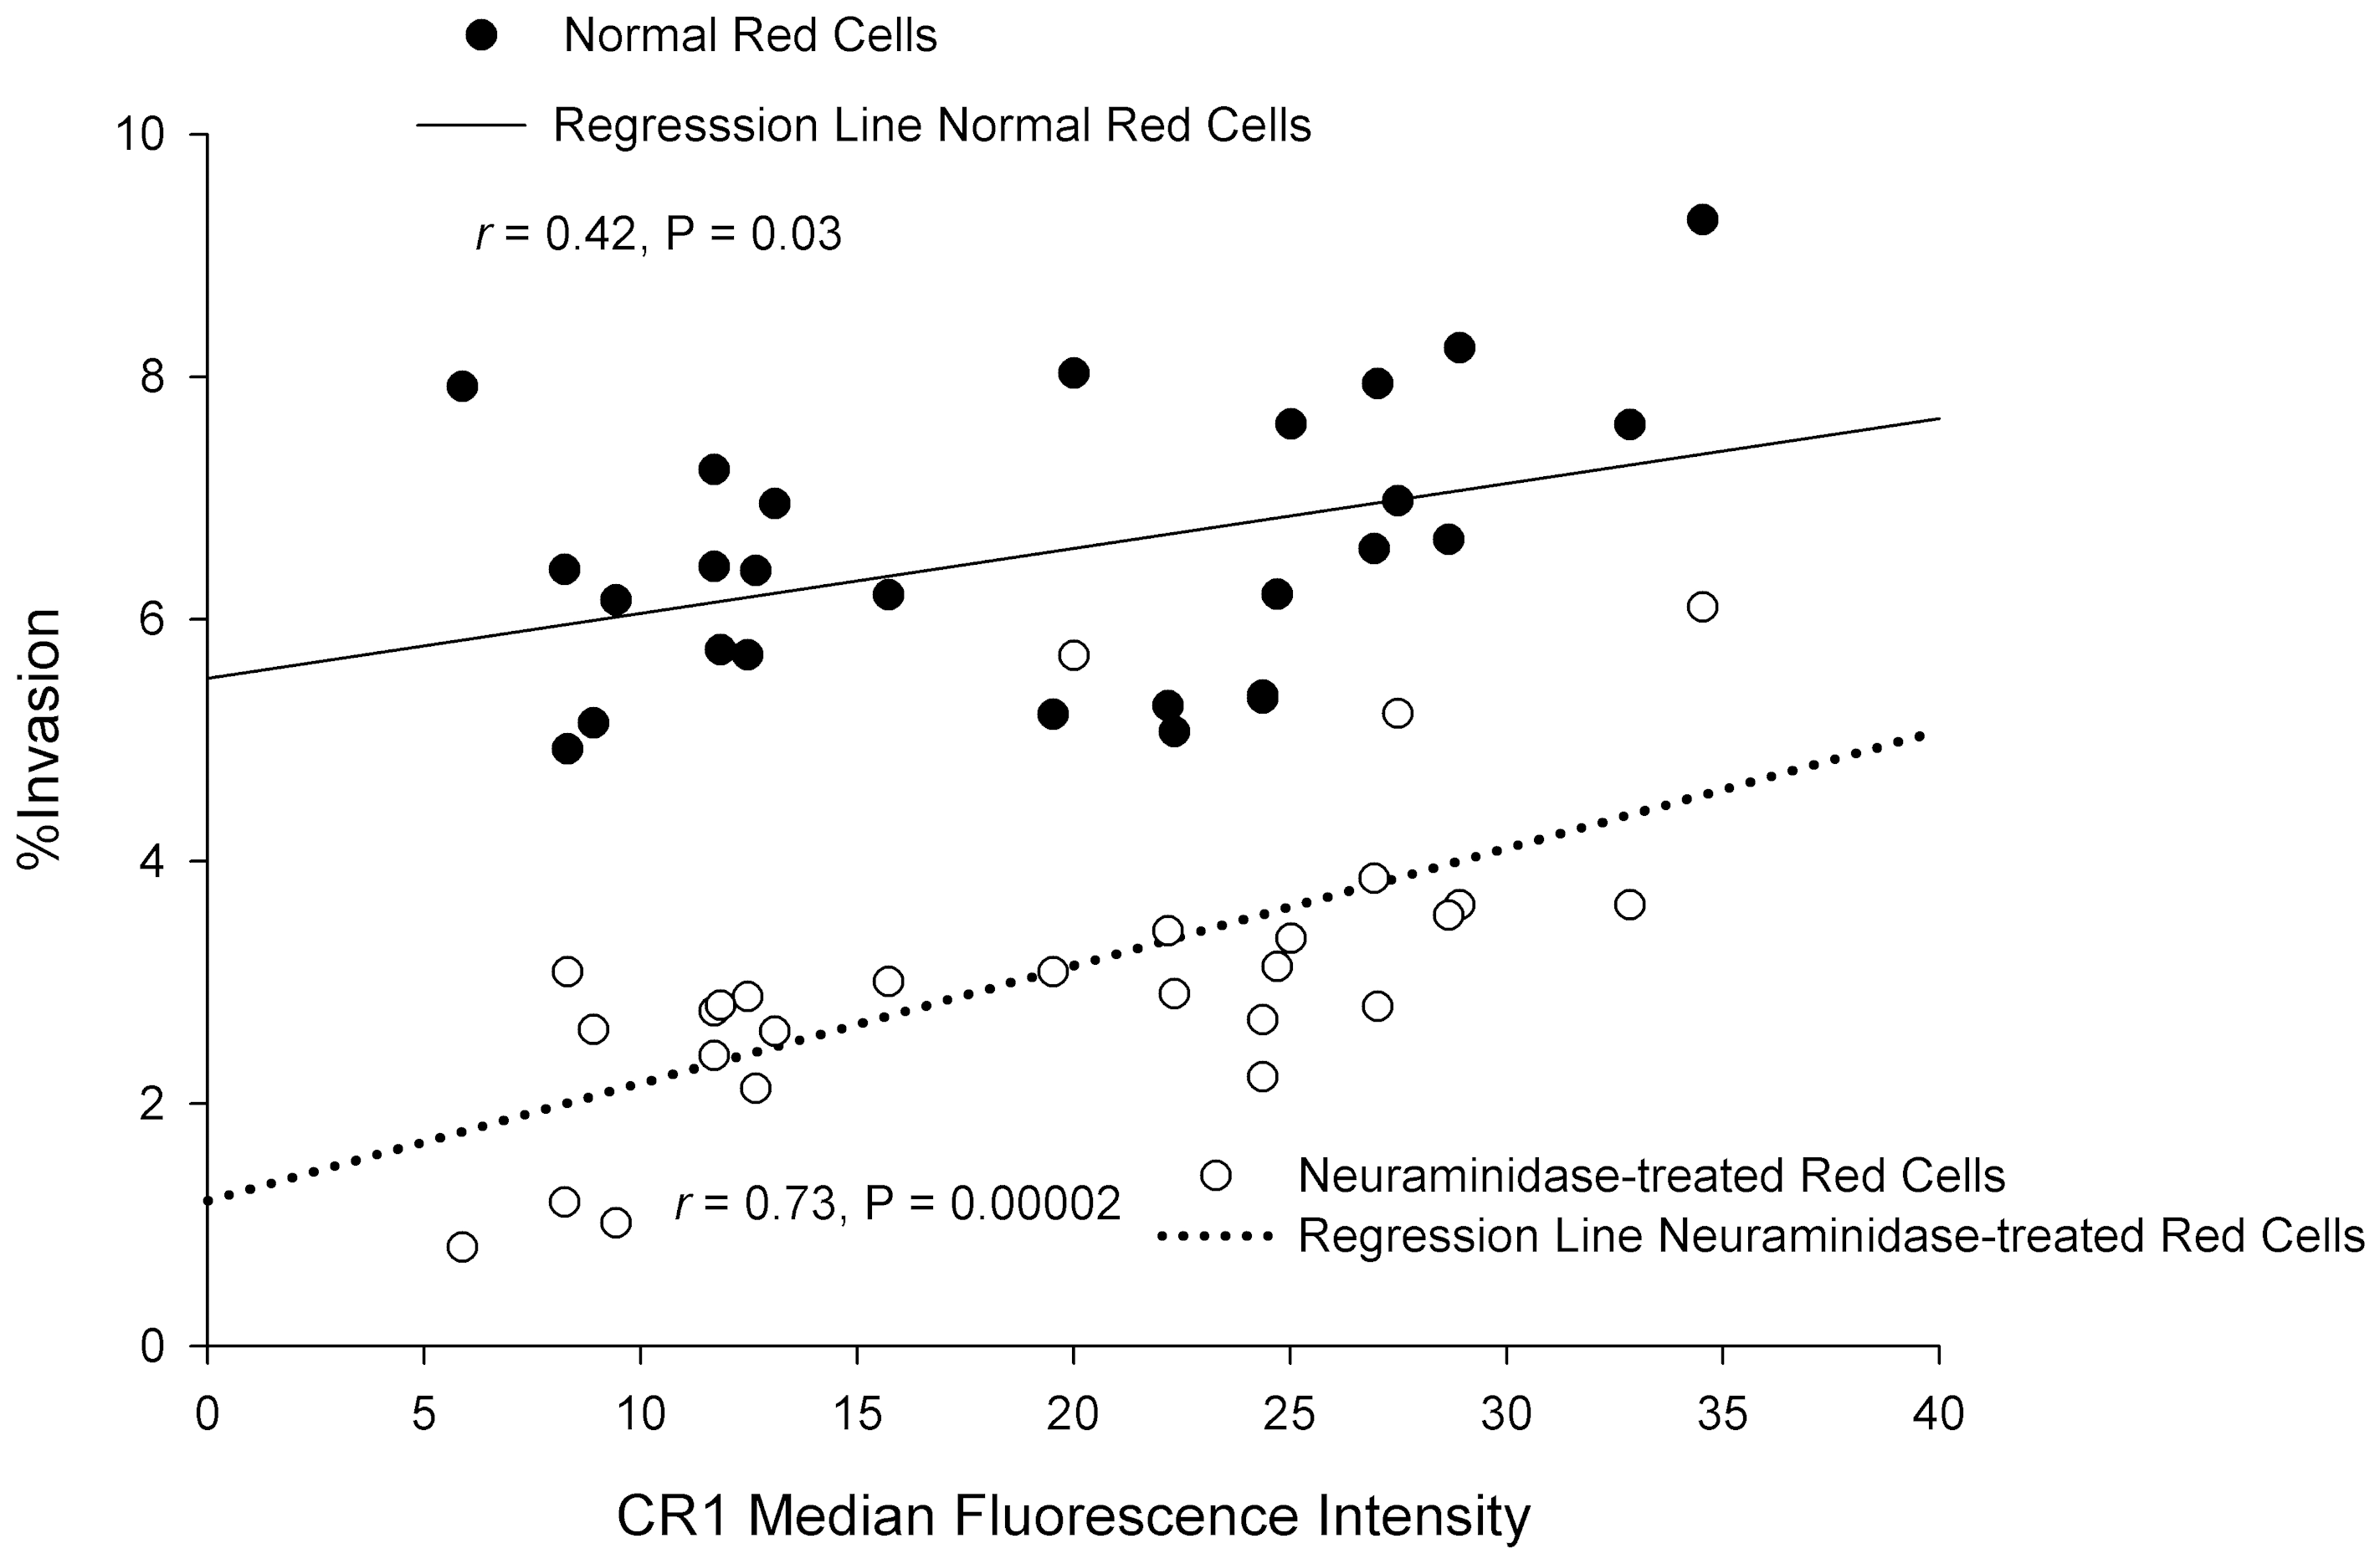 Correlation between CR1 median fluorescence intensity (MFI) and invasion of erythrocytes by <i>P. falciparum</i> 7G8.